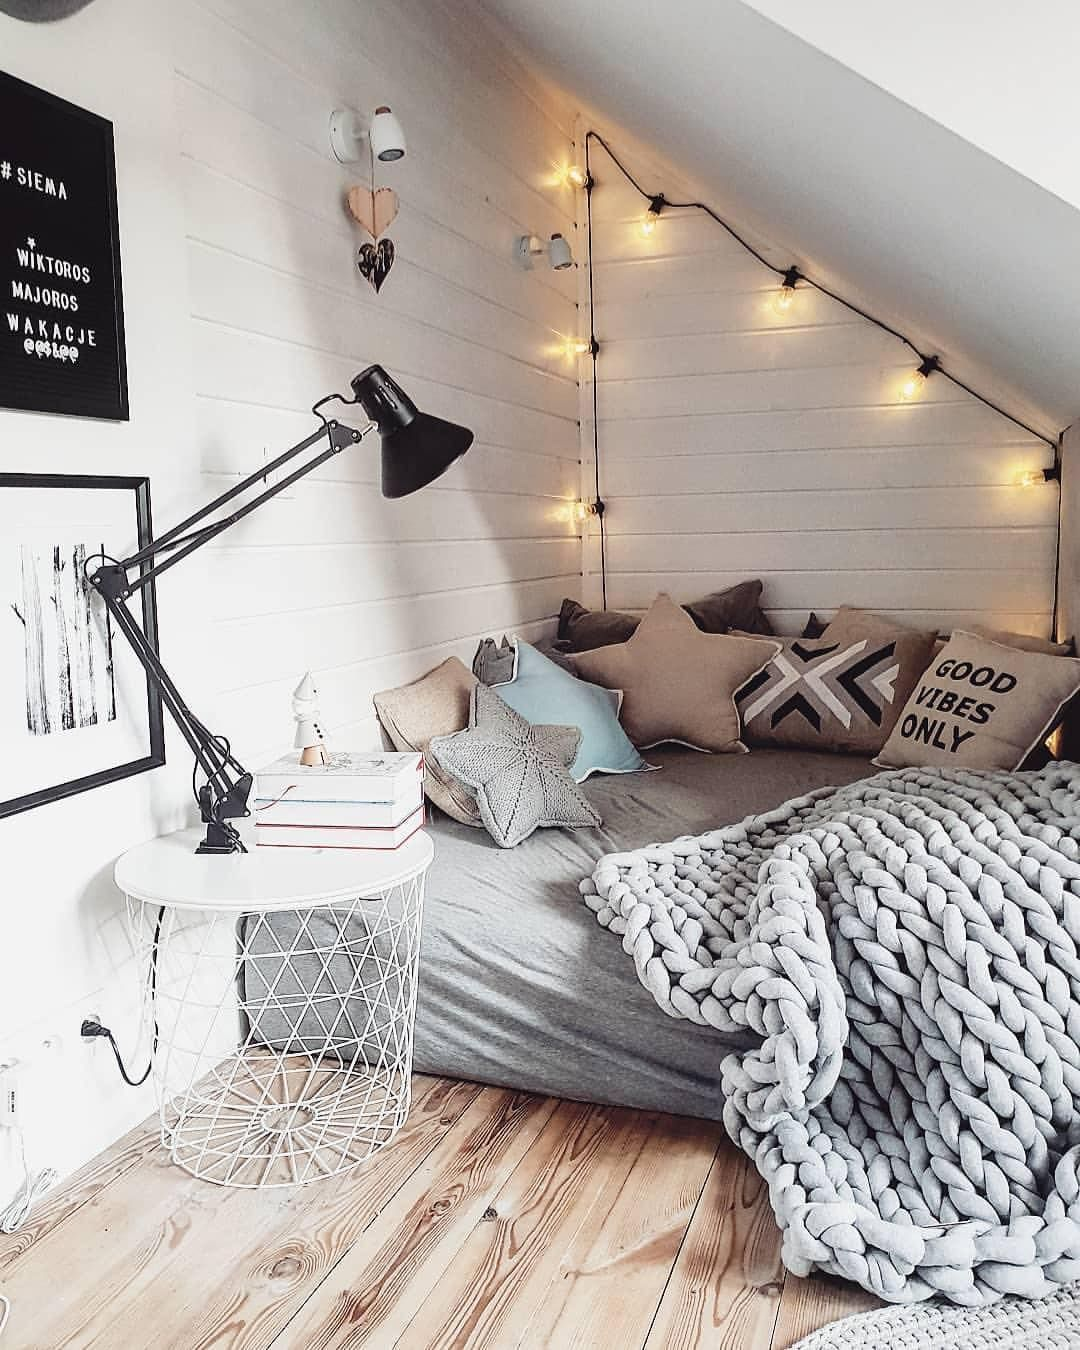 The Perfect Bedroom With These Key Principles And Ideas Bedroom Lightbox Homedecor Decor Cine Tumblr Zimmer Inspiration Schlafzimmer Design Raumdekoration